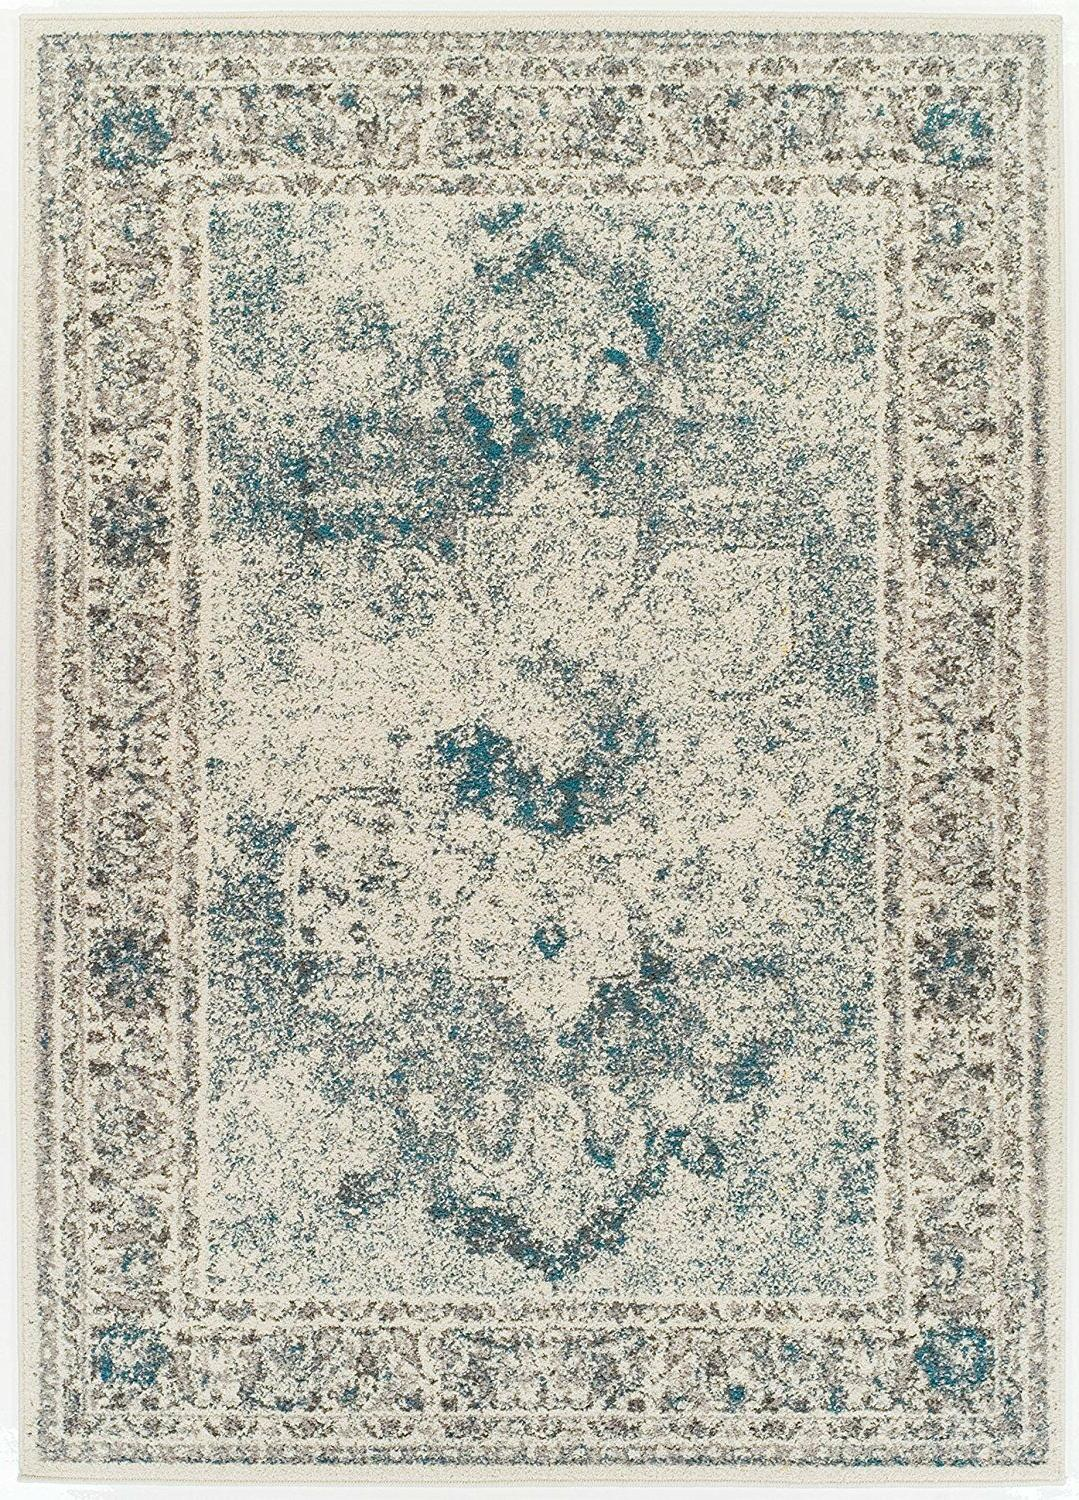 Distressed Rugs Cream 5x7 Living Room 2x8